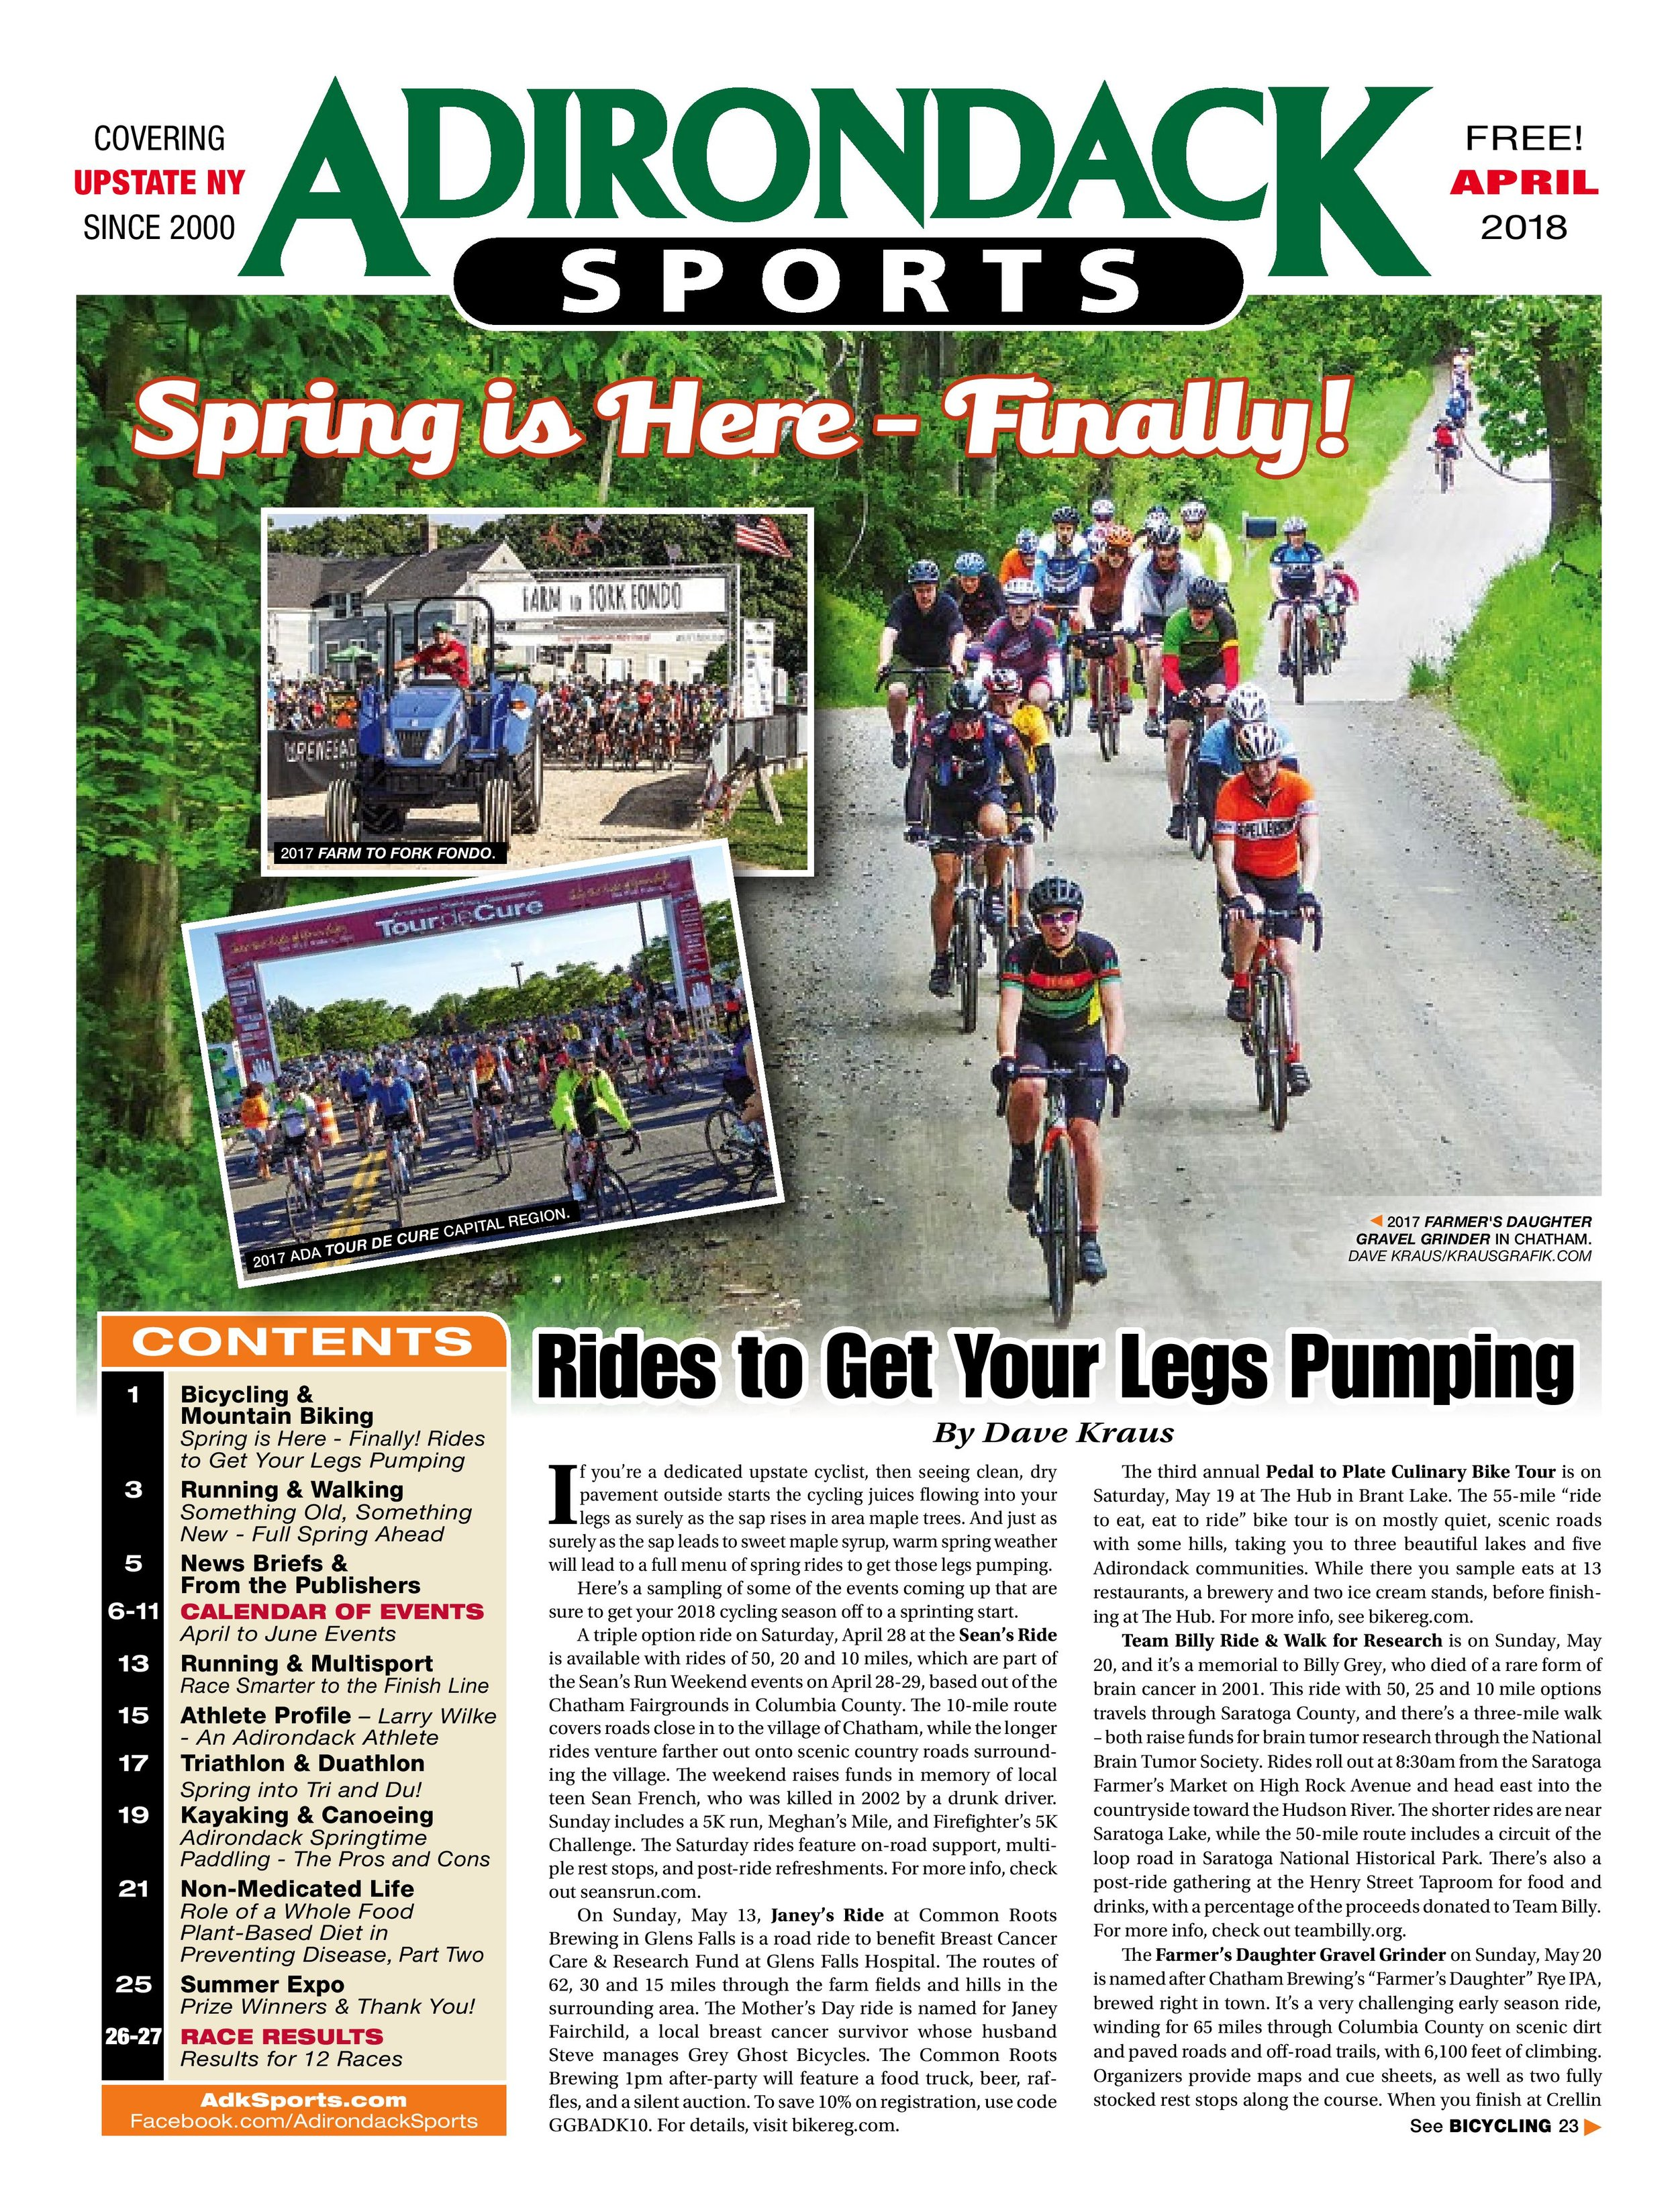 adk-sports-2018-04 cover-page-001.jpg